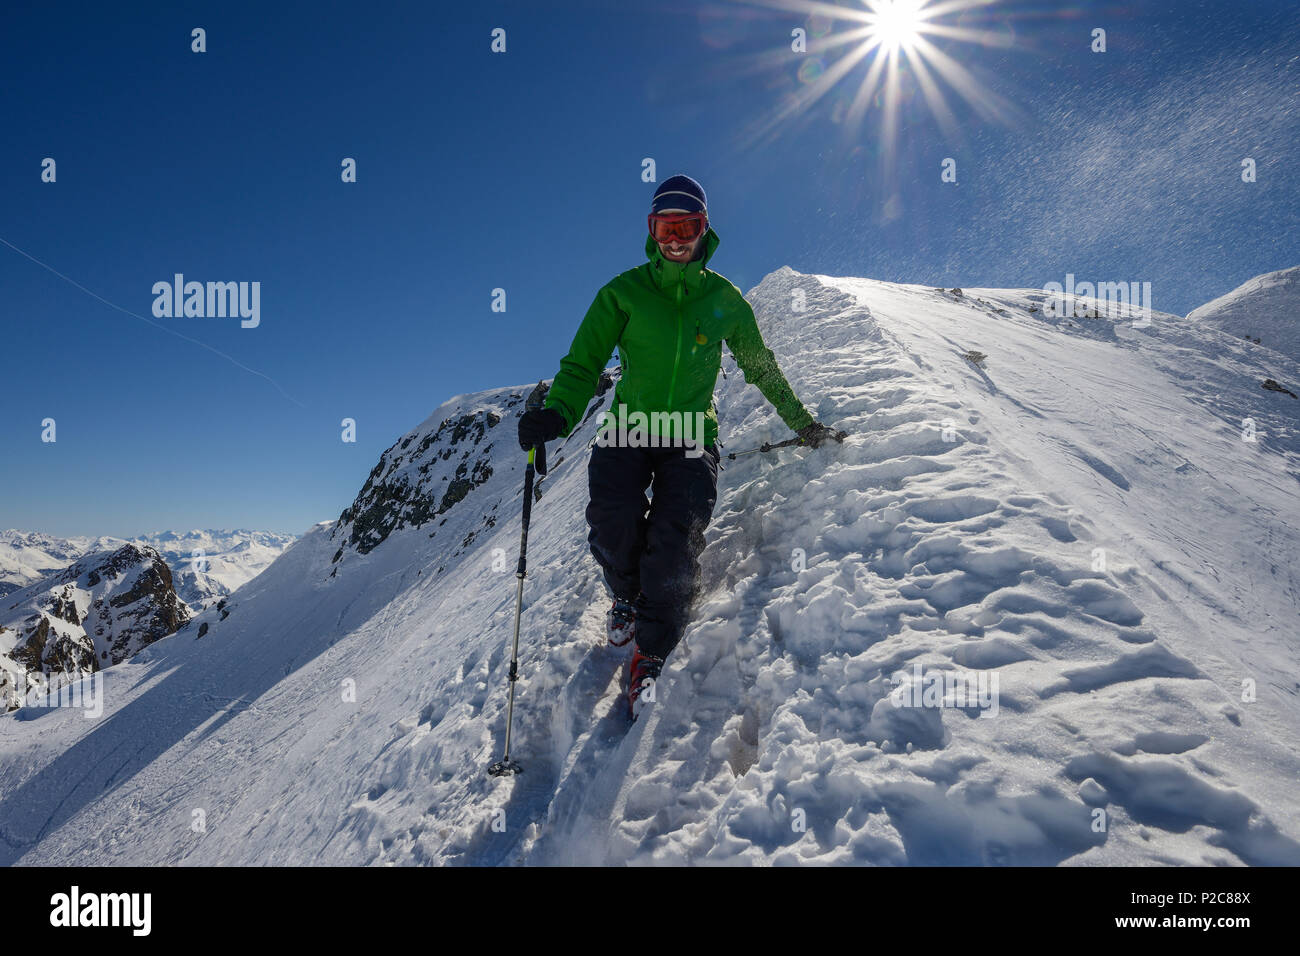 A mountaineer descending over the northern ridge of Piz Sarsura 3178 m, Grisons, Switzerland, Europe - Stock Image